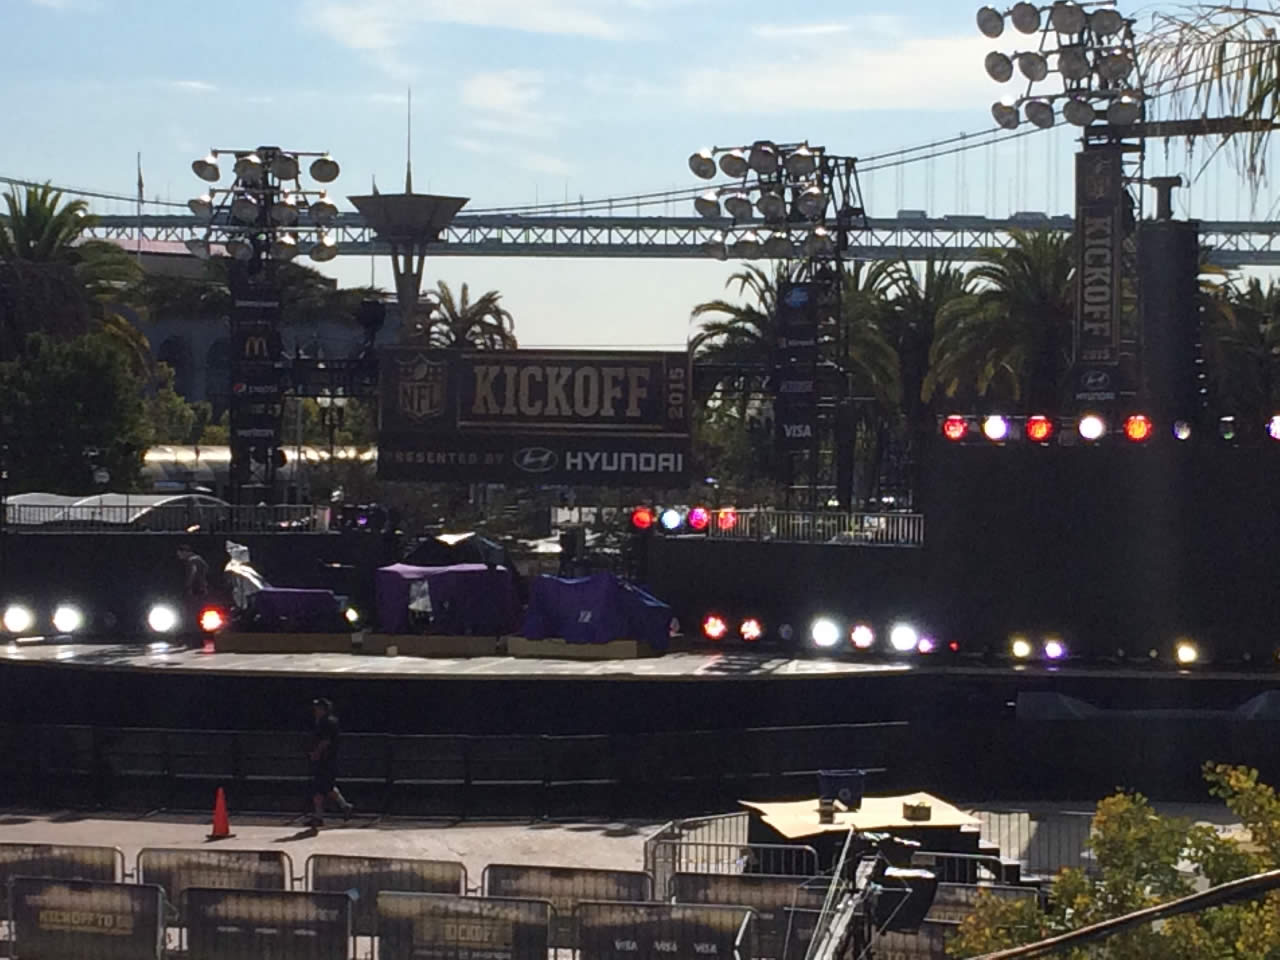 "<div class=""meta image-caption""><div class=""origin-logo origin-image none""><span>none</span></div><span class=""caption-text"">The NFL Super Bowl 50 Host Committee is kicking off the NFL's regular season with a free concert at Justin Herman Plaza in San Francisco, on Thursday, September 10, 2015. (Kimmie Sakamoto/KGO-TV)</span></div>"